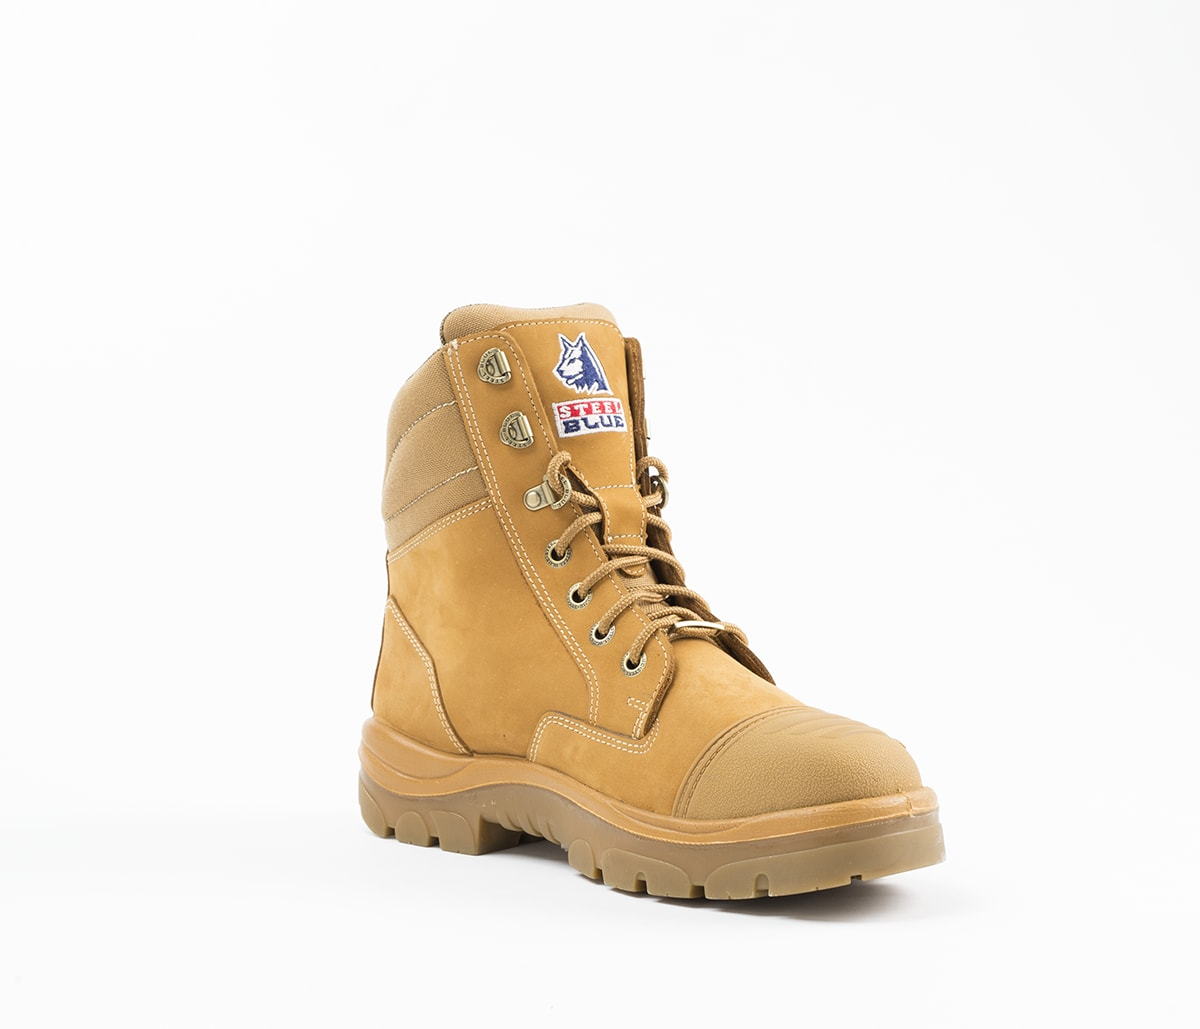 Leather Work Boots With Steel Toe Cap